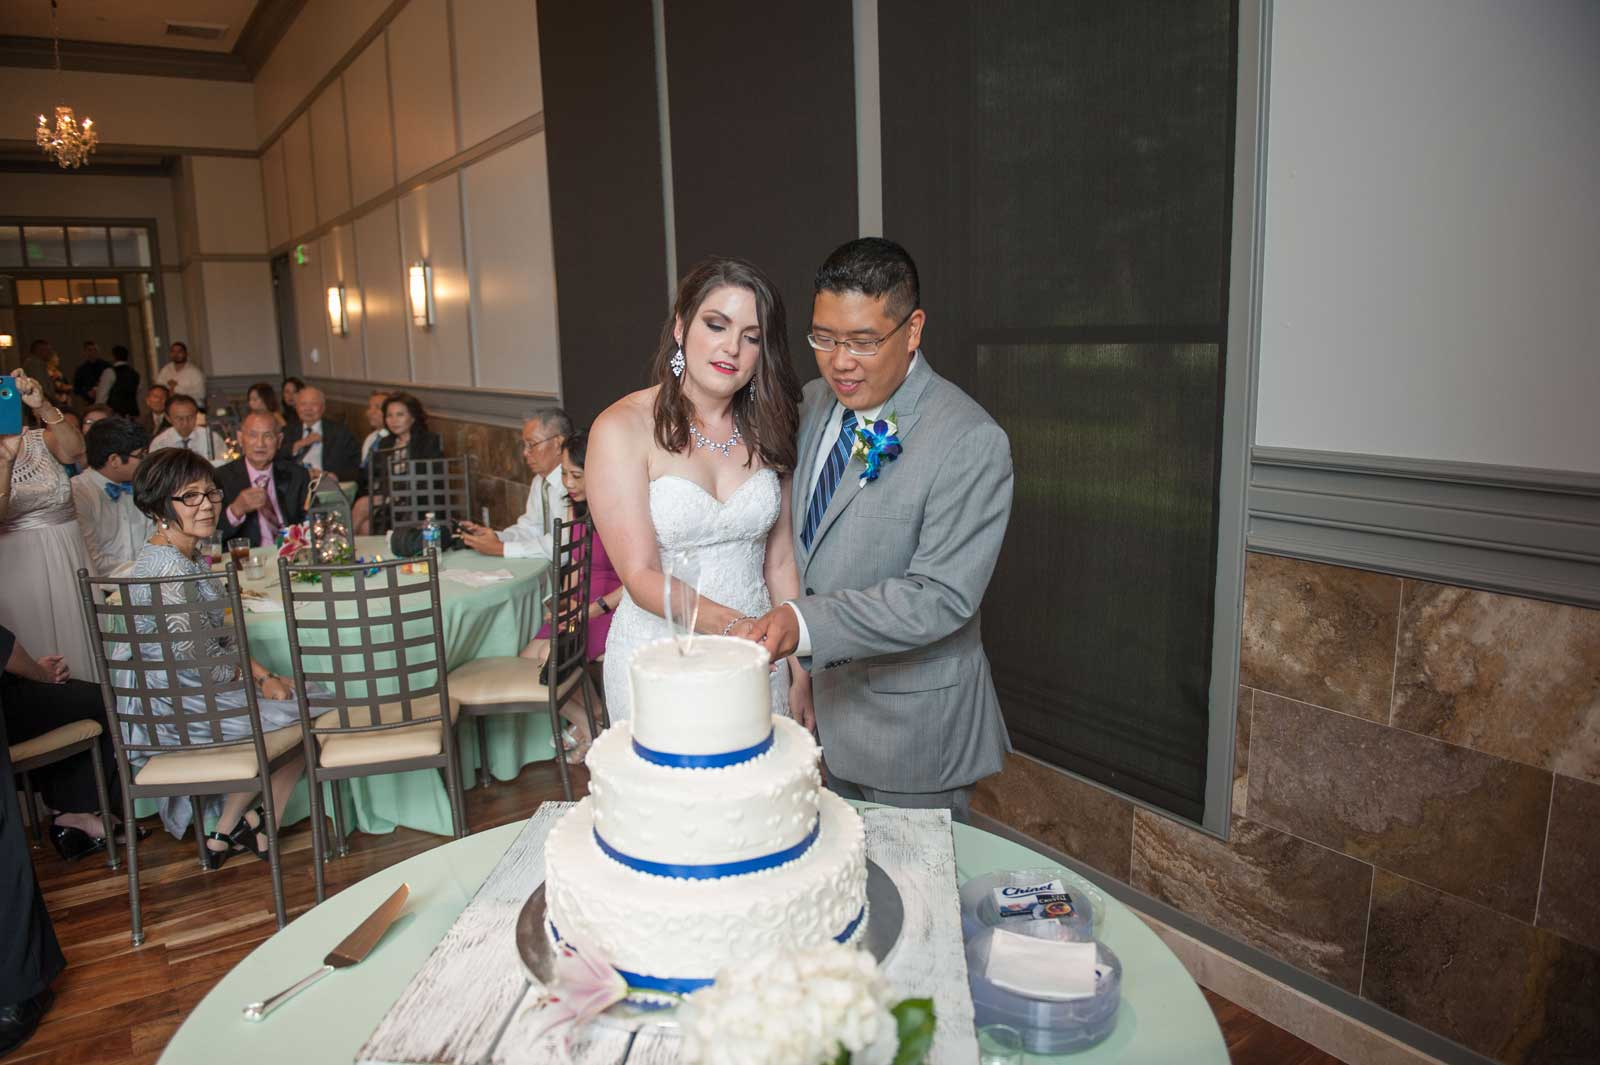 photo of the bride and groom cutting the cake at The Ark in Katy